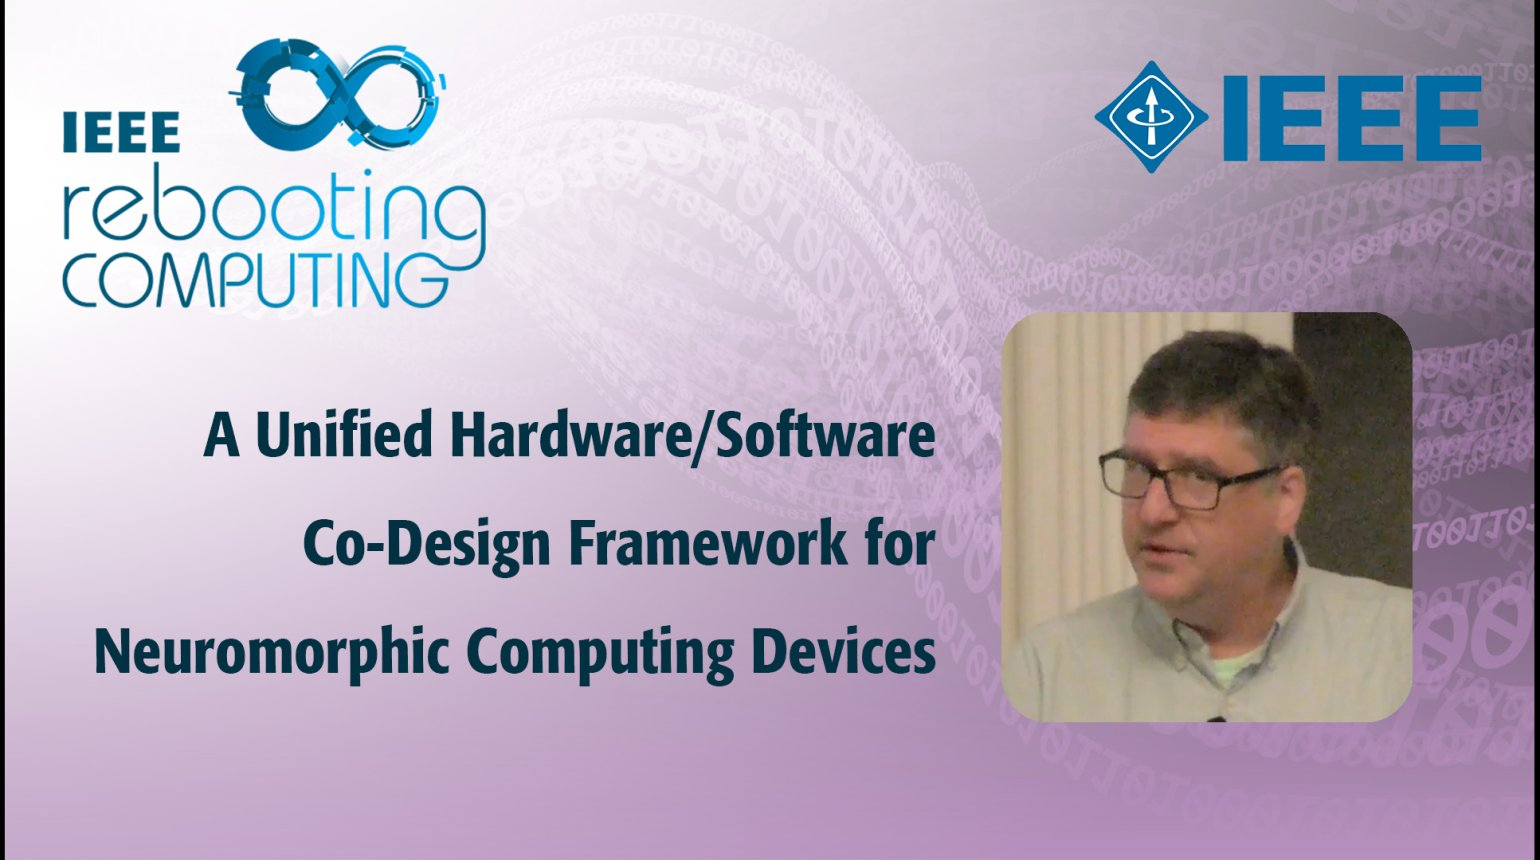 A Unified Hardware/Software Co-Design Framework for Neuromorphic Computing Devices and Applications - IEEE Rebooting Computing 2017